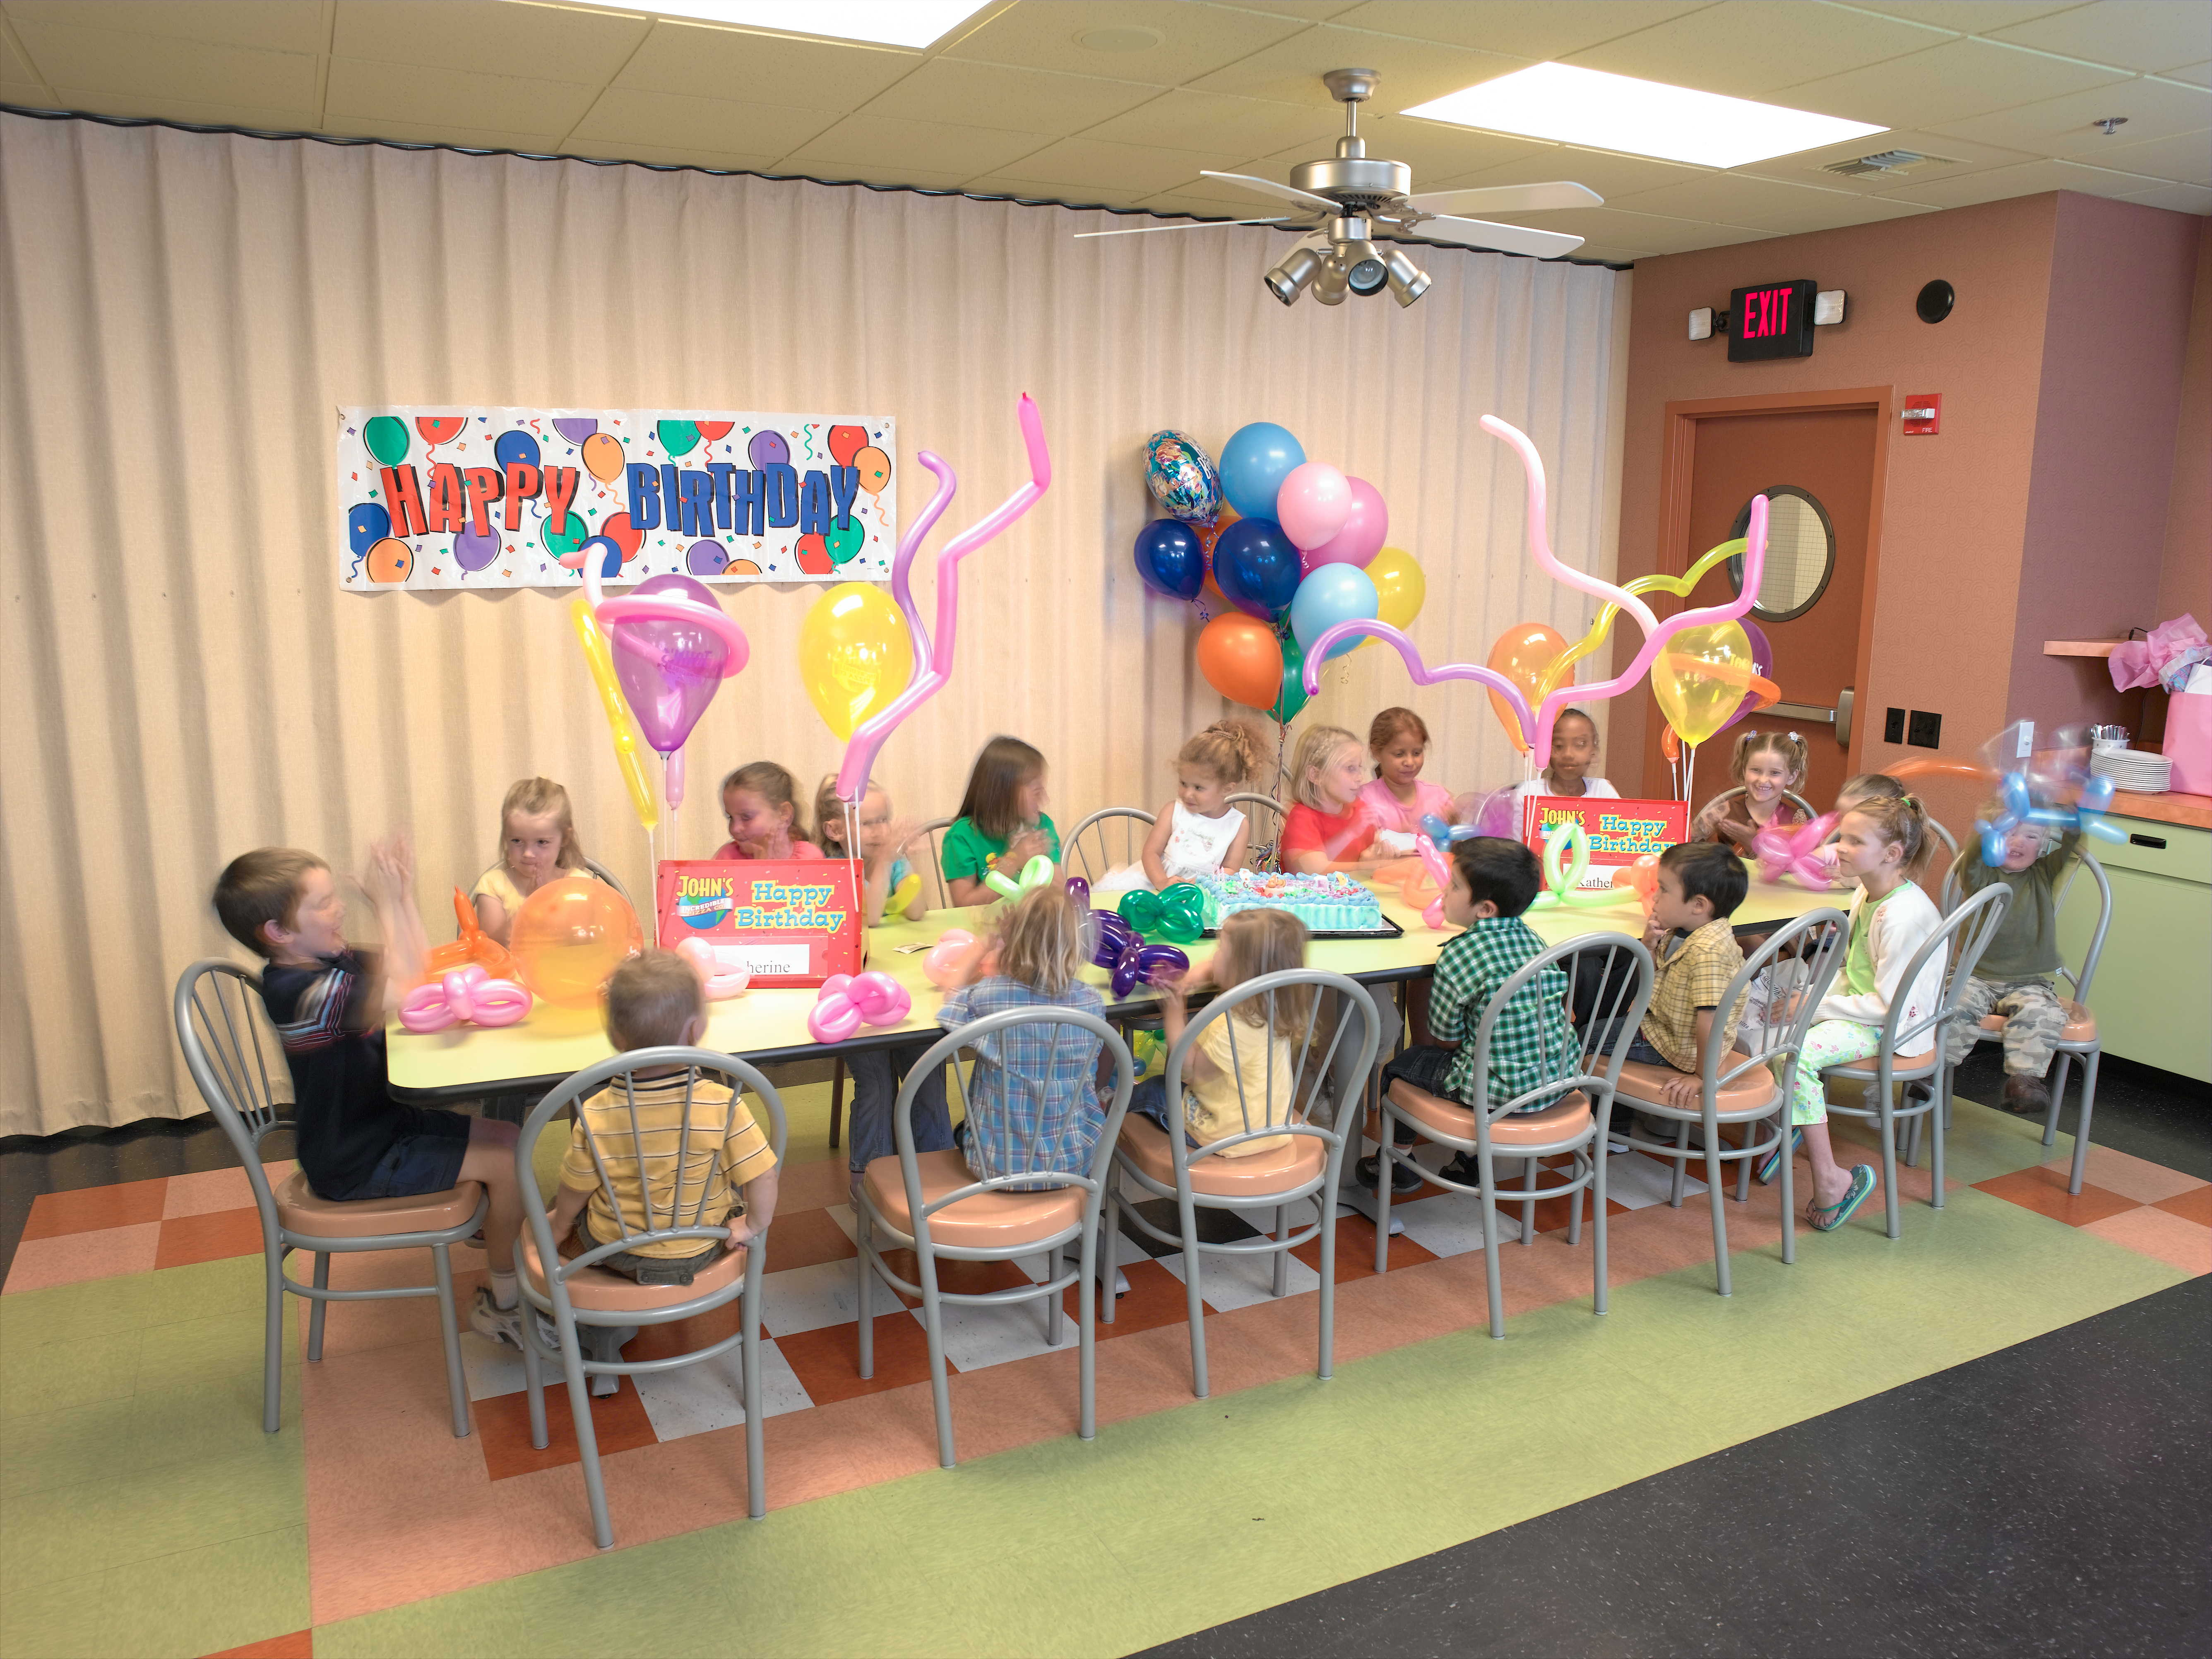 indoor birthday party activities ; Ideas-for-Planning-an-Affordable-Birthday-Party-for-Your-Kid